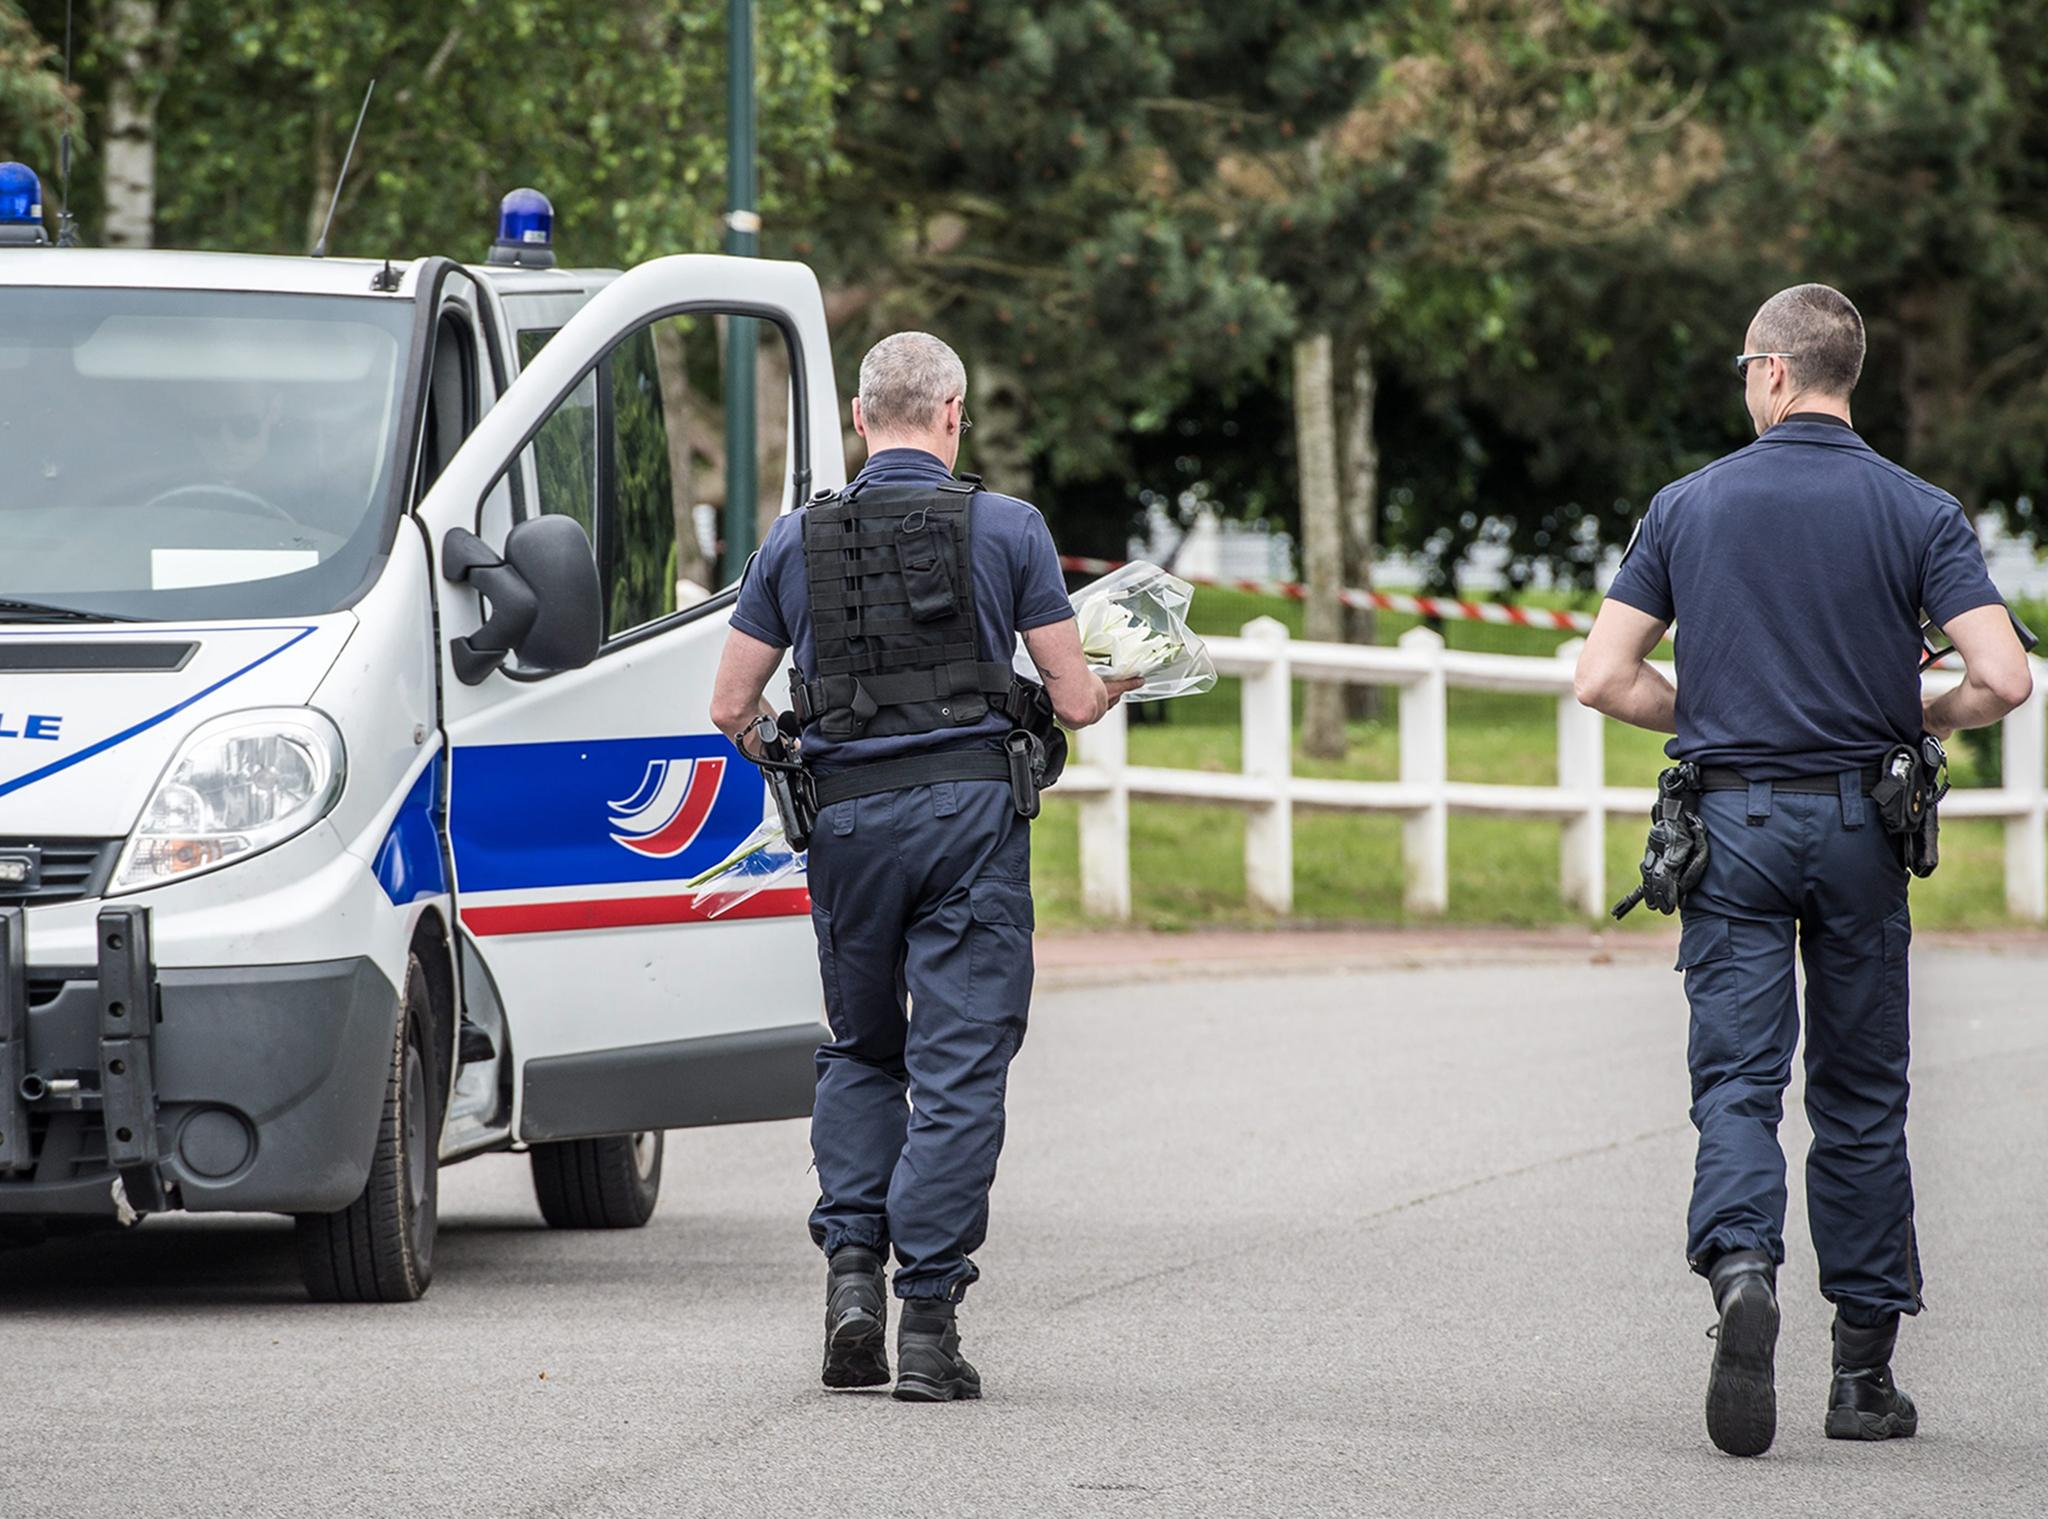 France police stabbing: Facebook Live video shows Isis